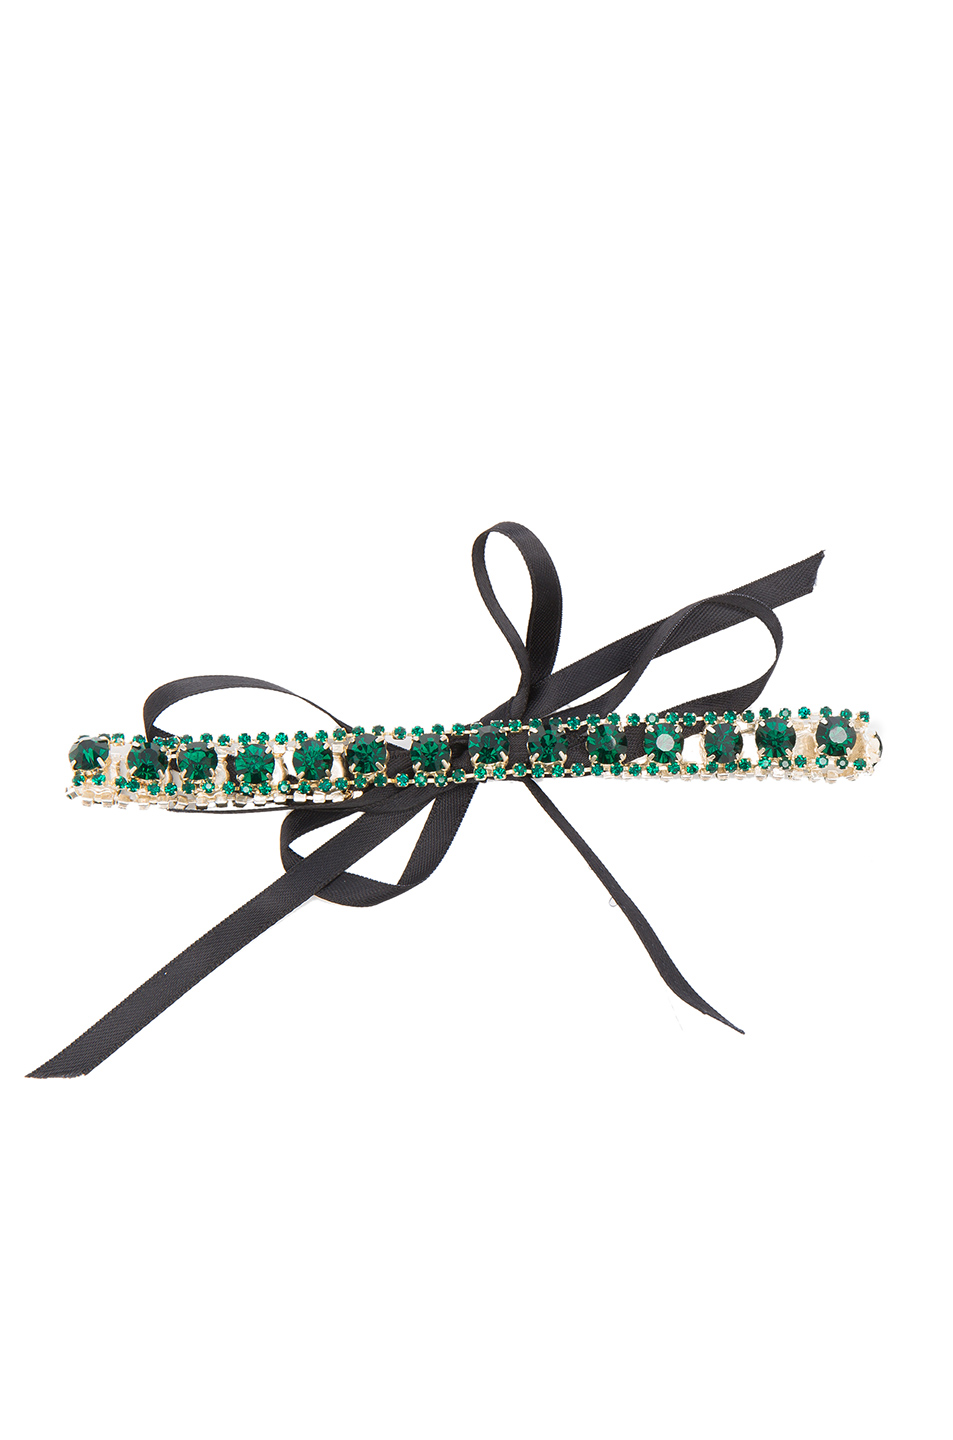 ERTH for FWRD Vintage Crystal Choker in Metallics,Green